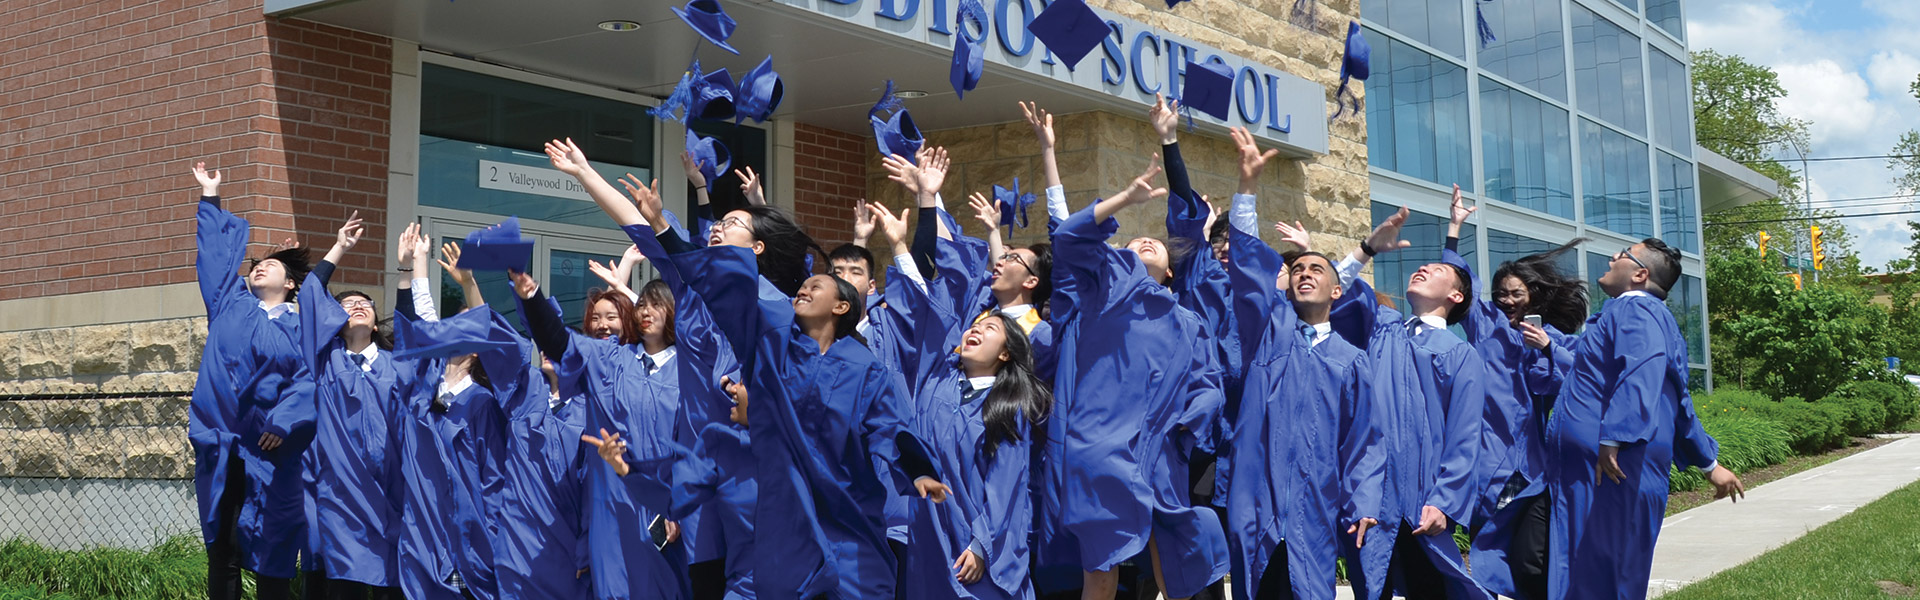 J. Addison Private School Graduates Receive 100% Acceptance Rate